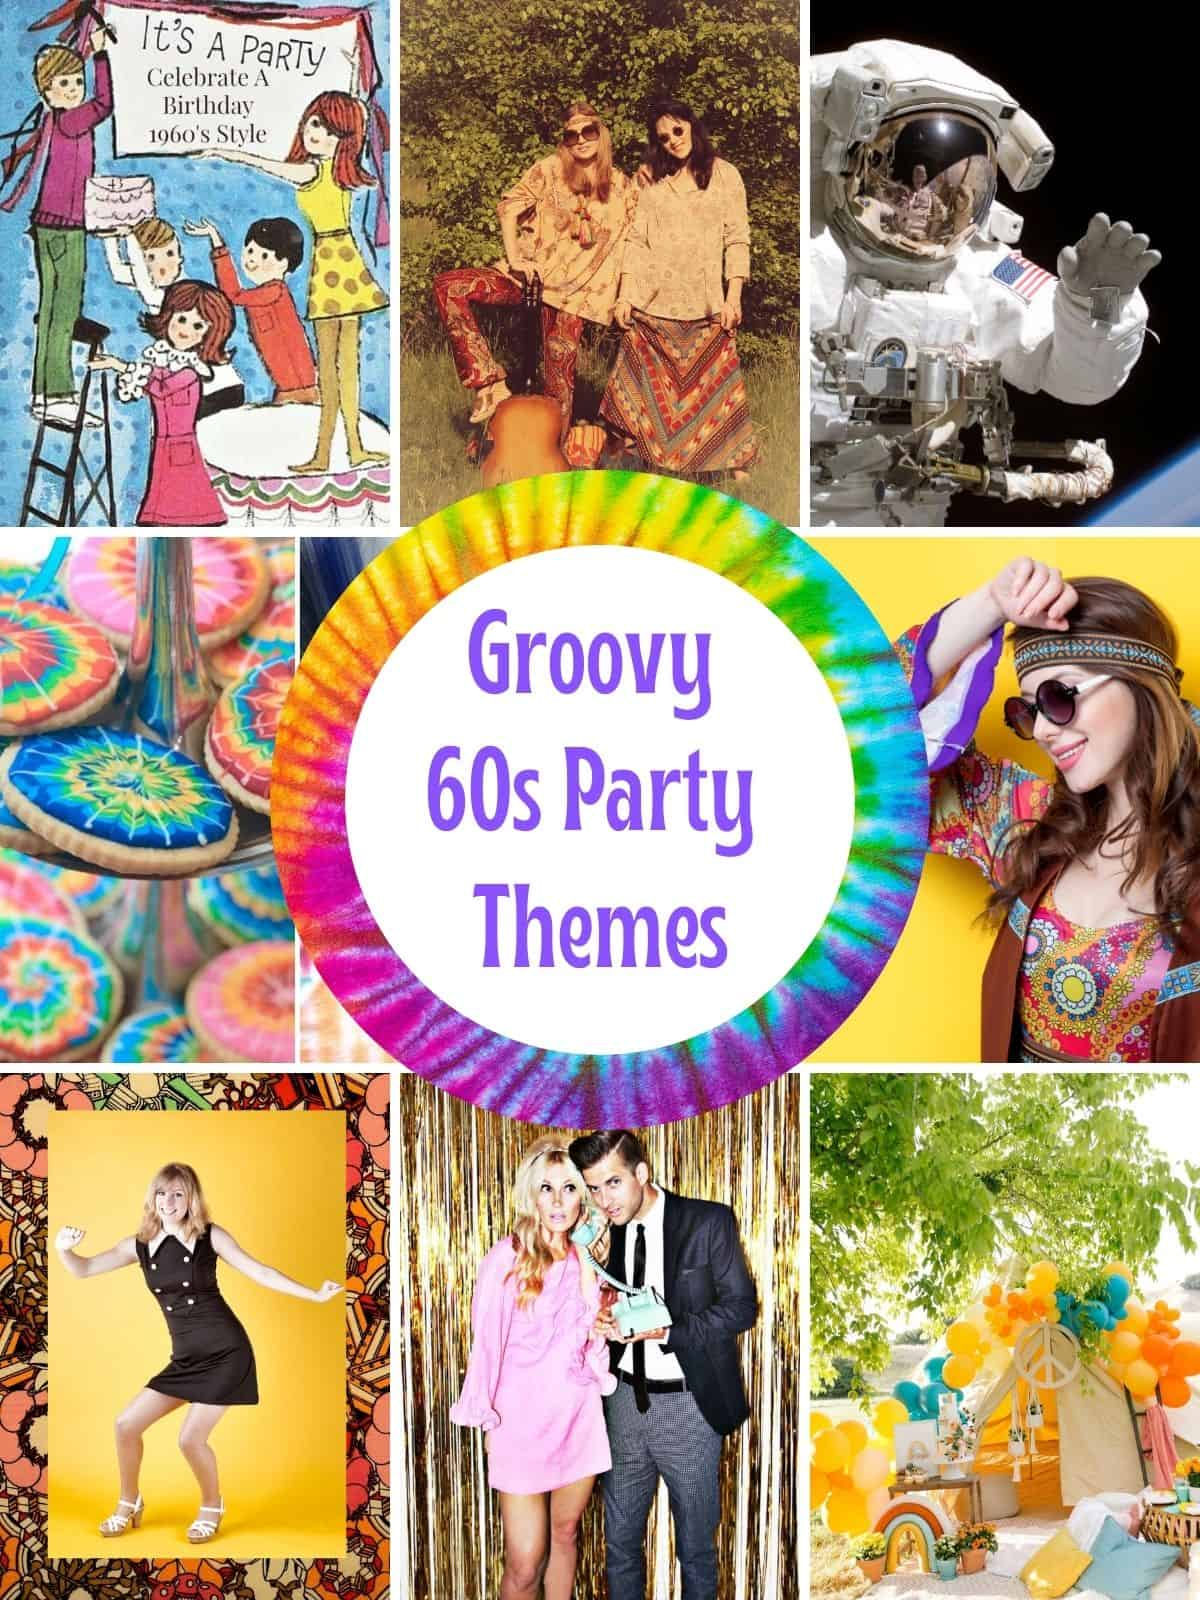 7 Groovy 60s Party Themes with pictures of hippies